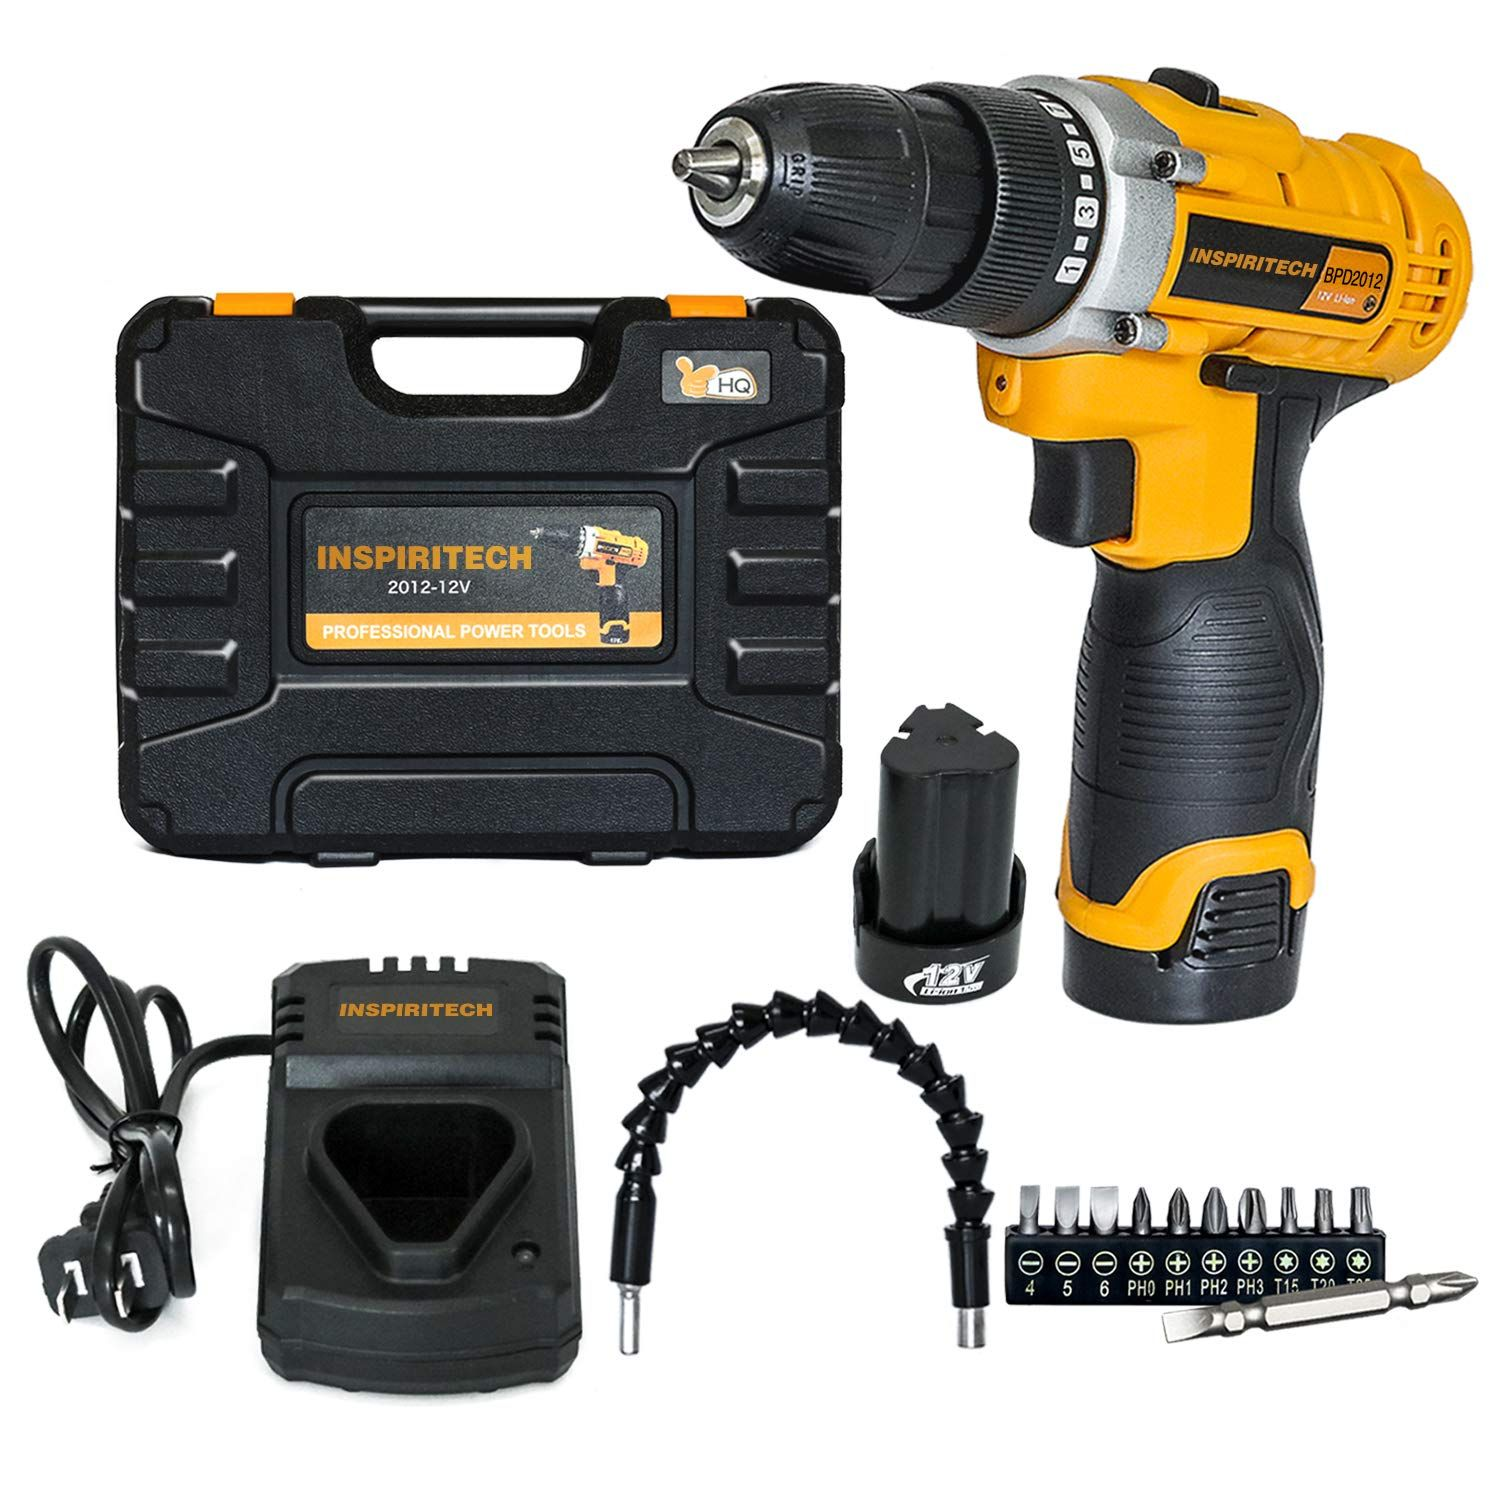 Inspiritech 12v Cordless Drill Driver Variable Speed 3 8inch Keyless Chuck 16 Clutch Positions With 2 Lithium Ion Batteries Cordless Drill Electric Drill Drill